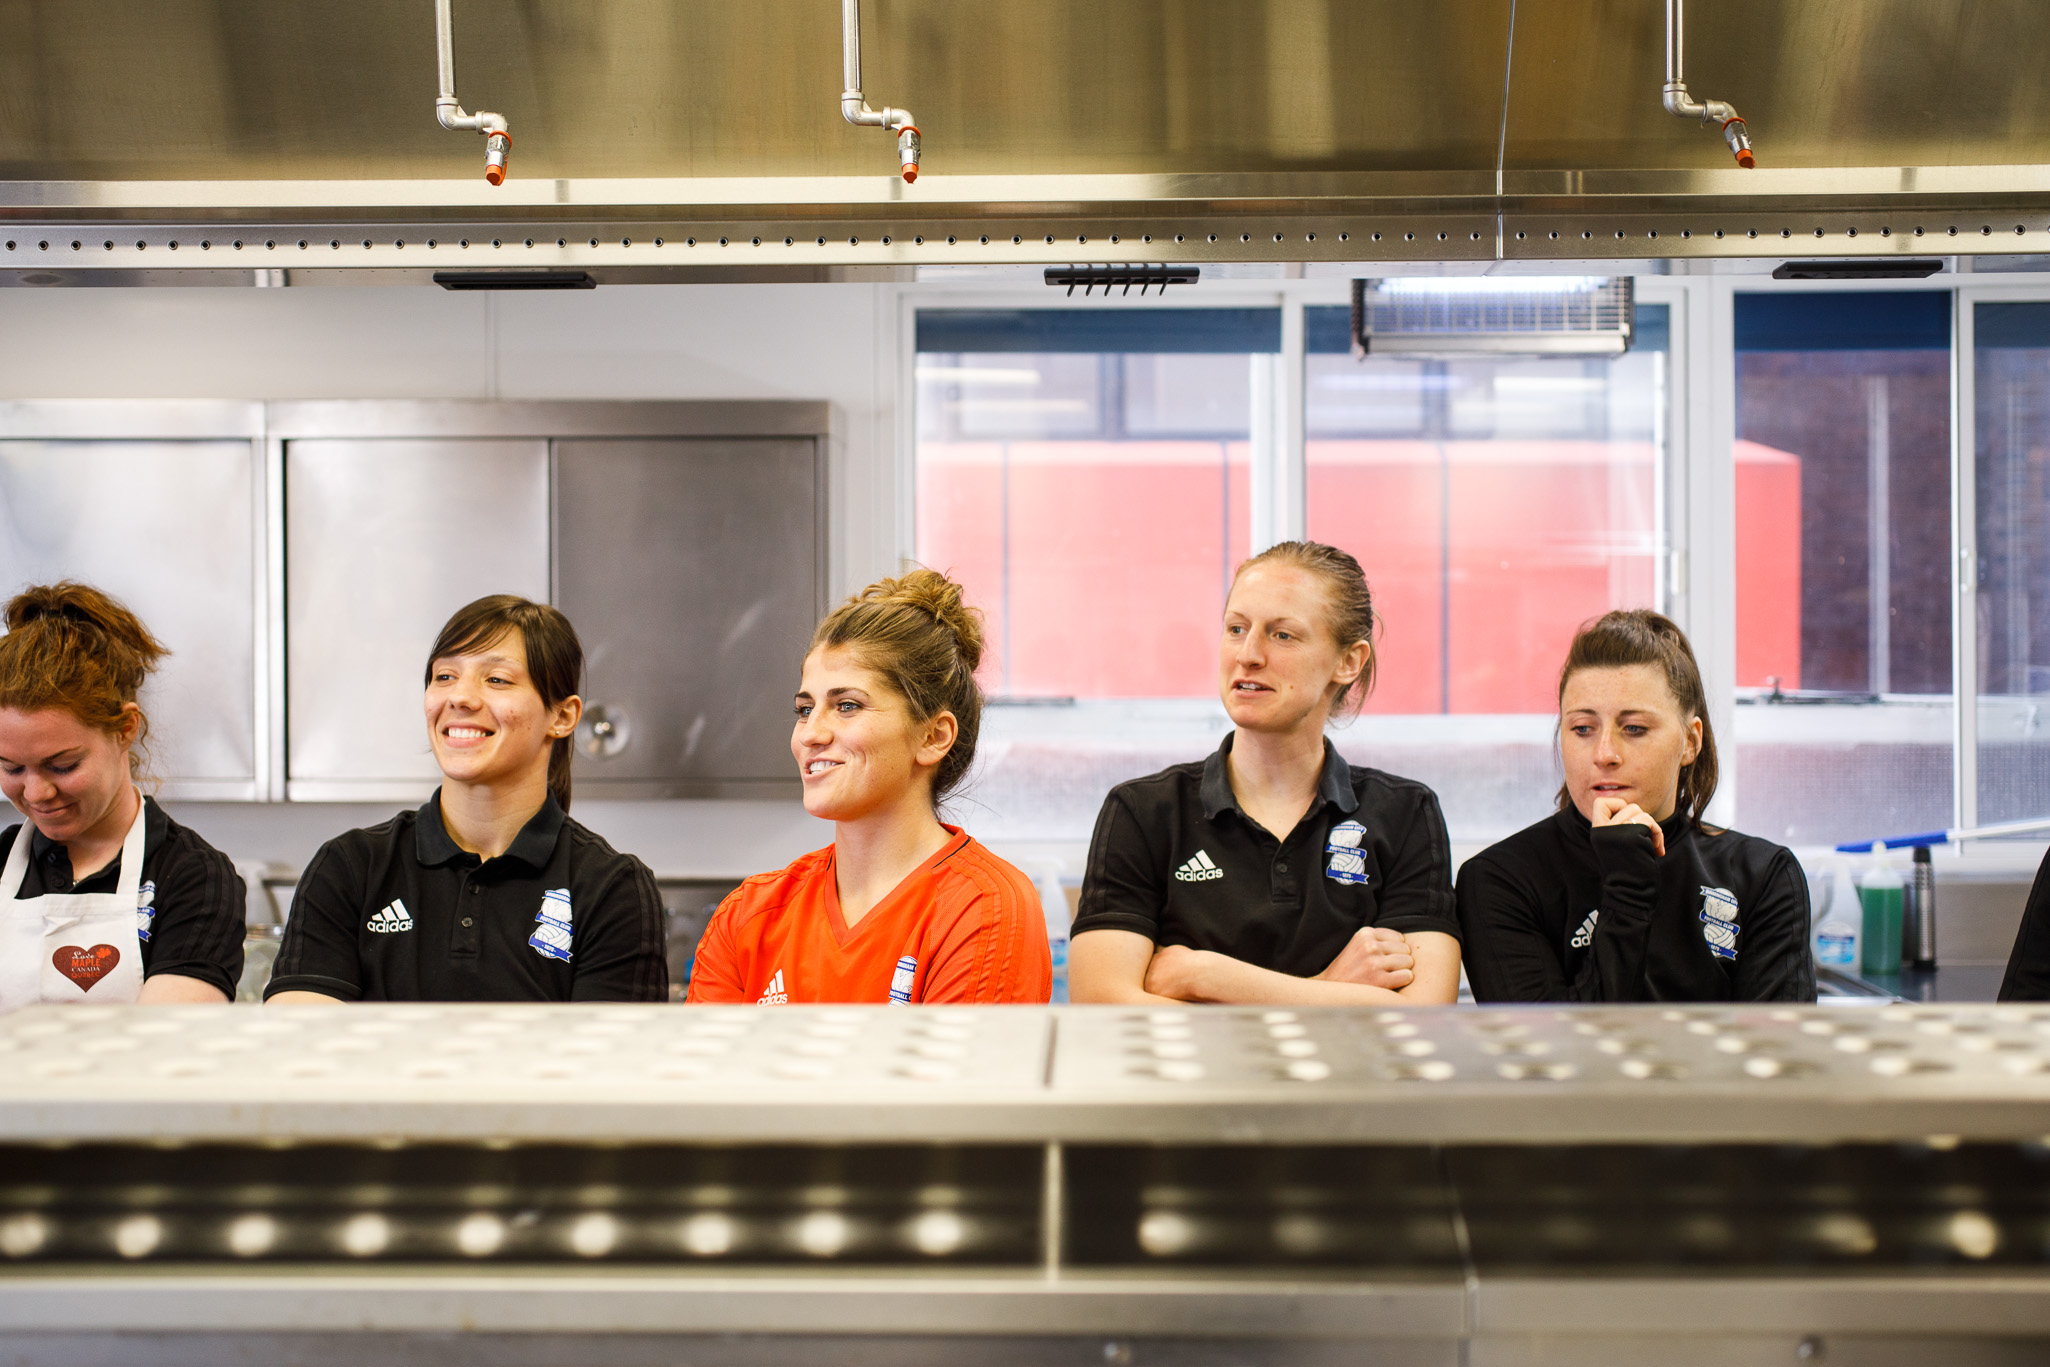 Birmingham City Ladies FC players in the kitchen